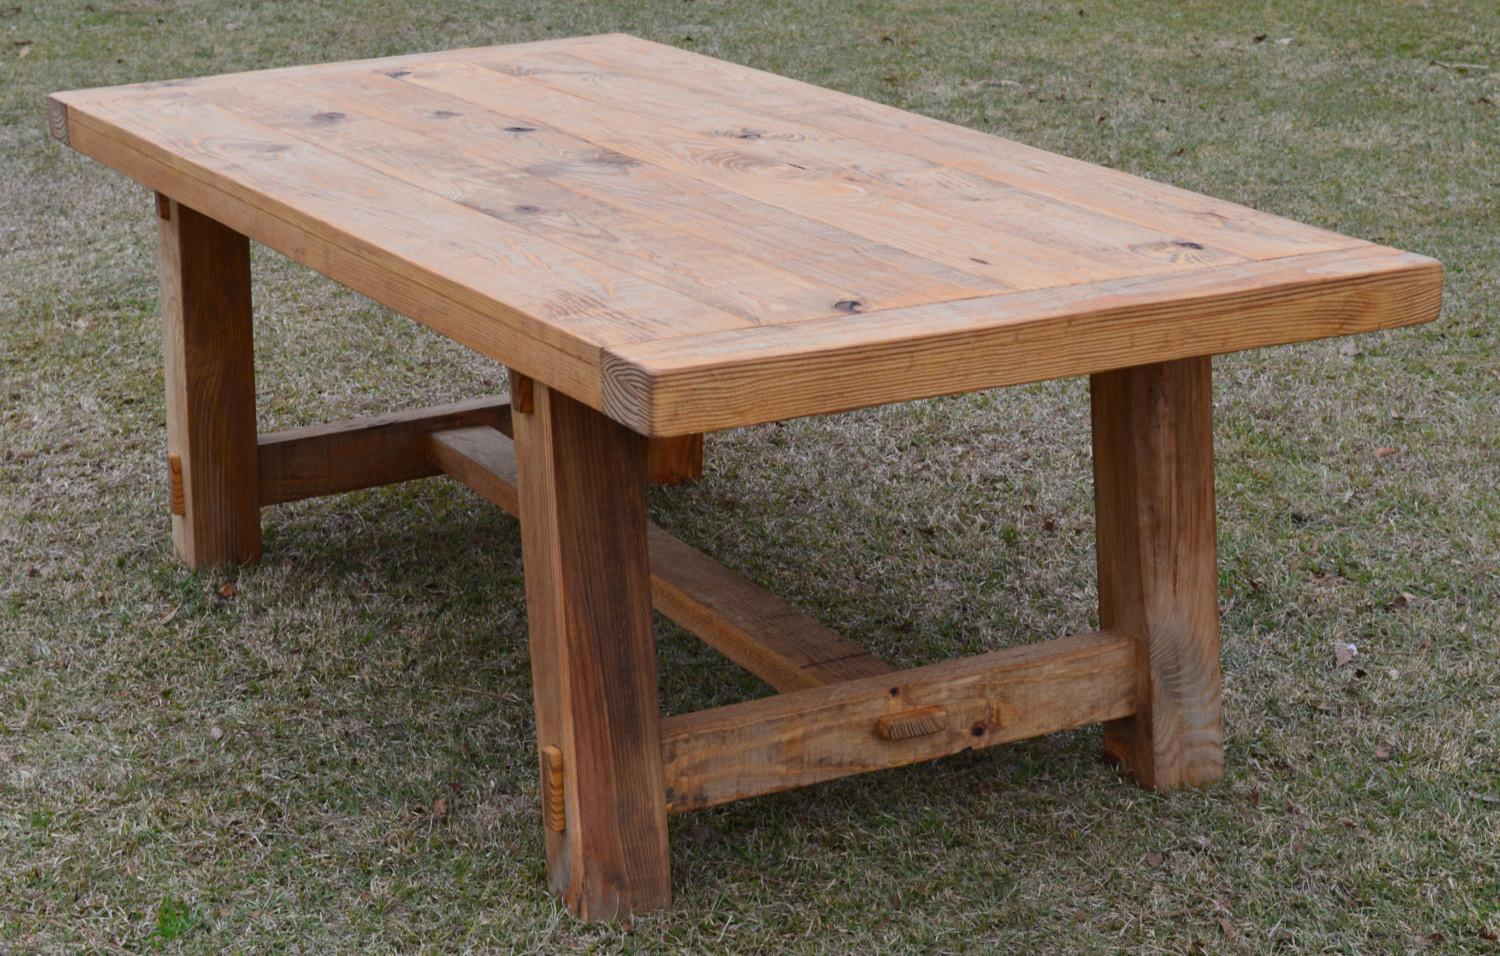 Trestle Tables Outdoor Your Family New